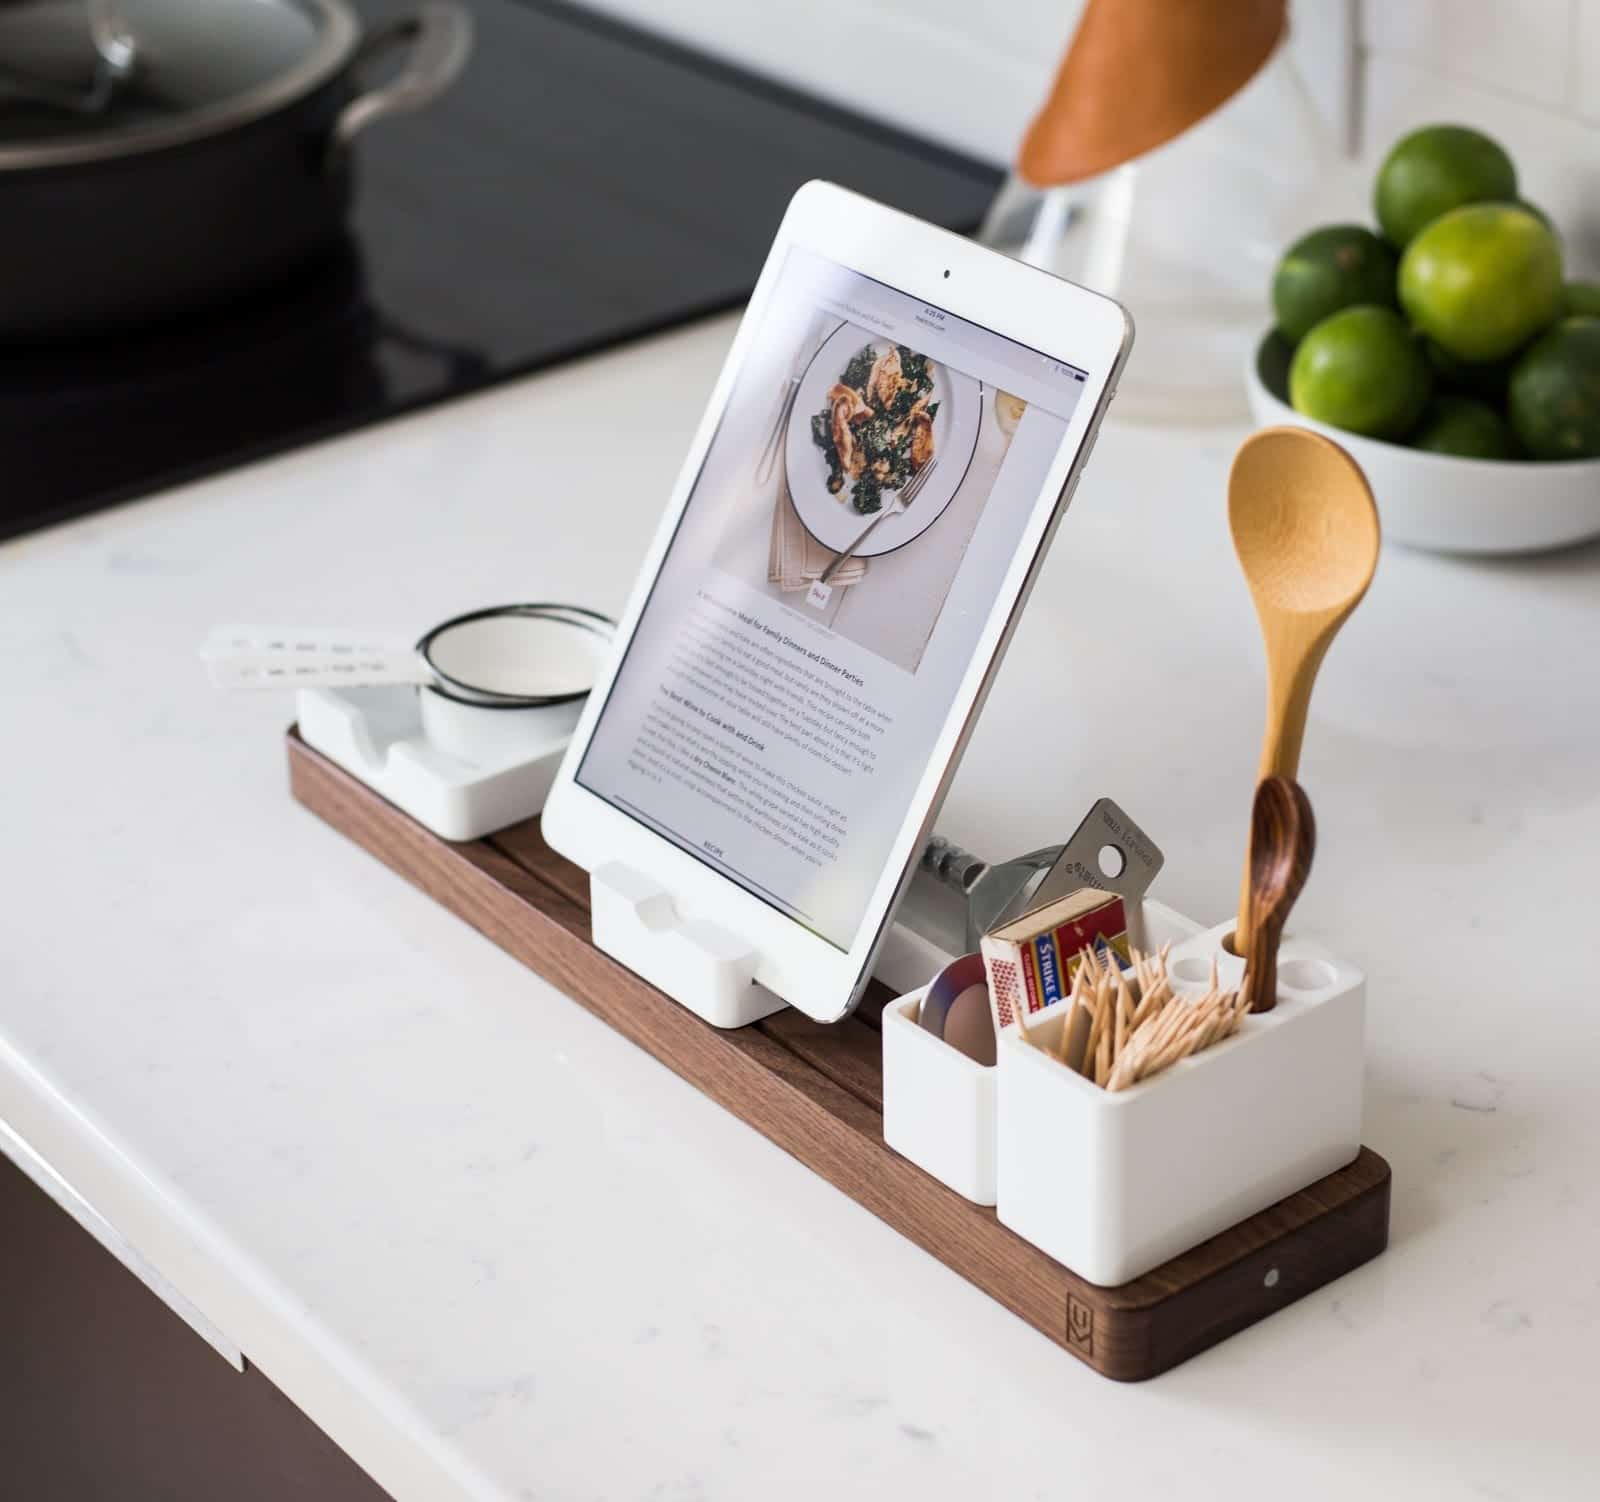 What are Shoppable Recipes and Why are they important for Brands? Guest Blog